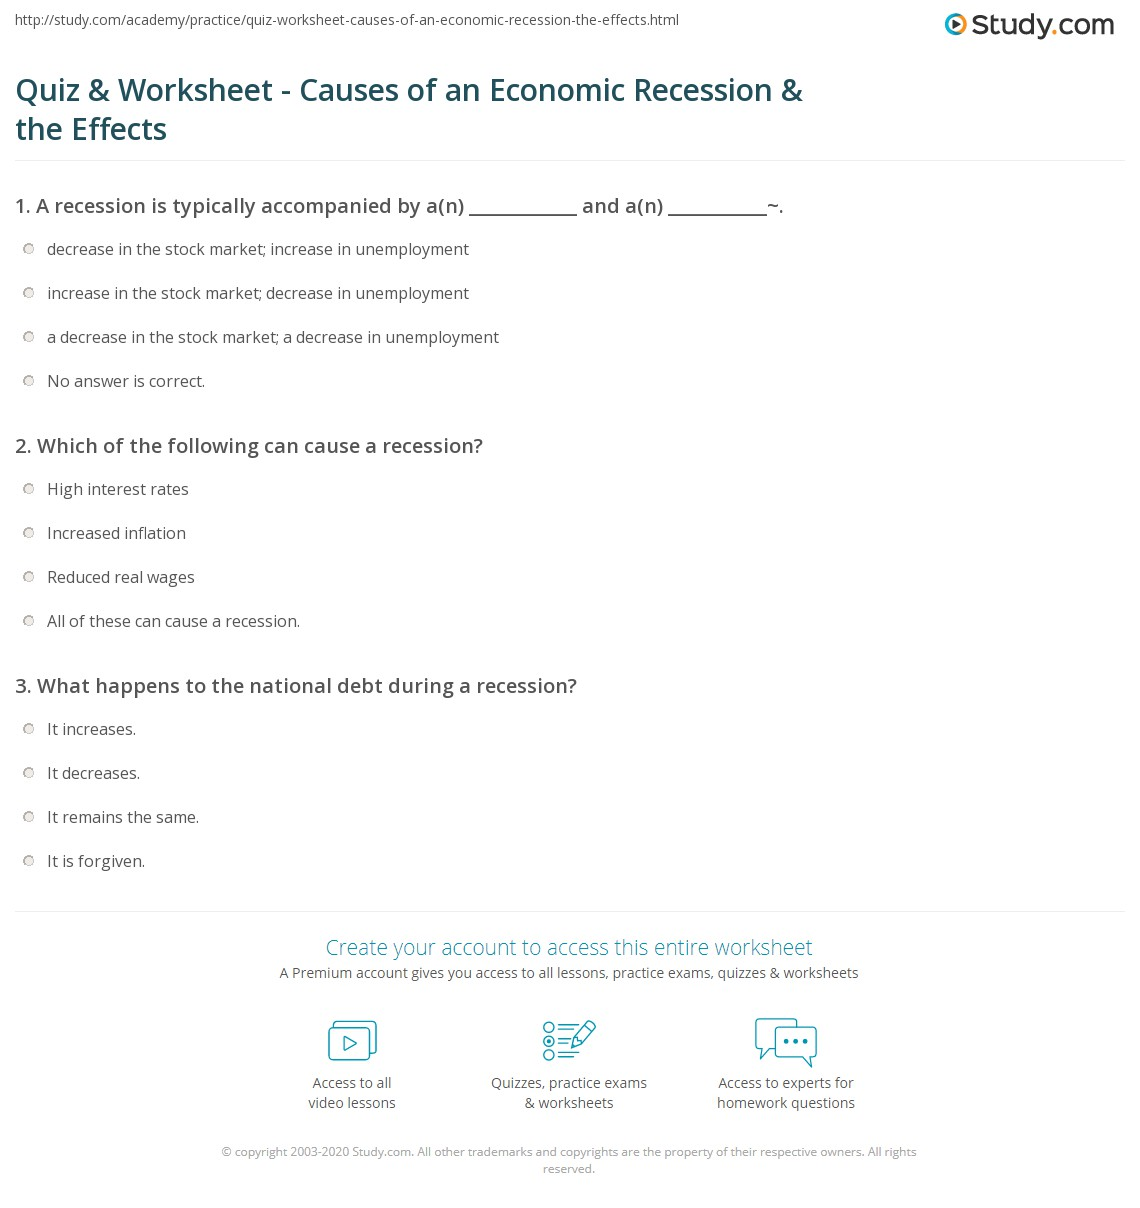 quiz & worksheet - causes of an economic recession & the effects